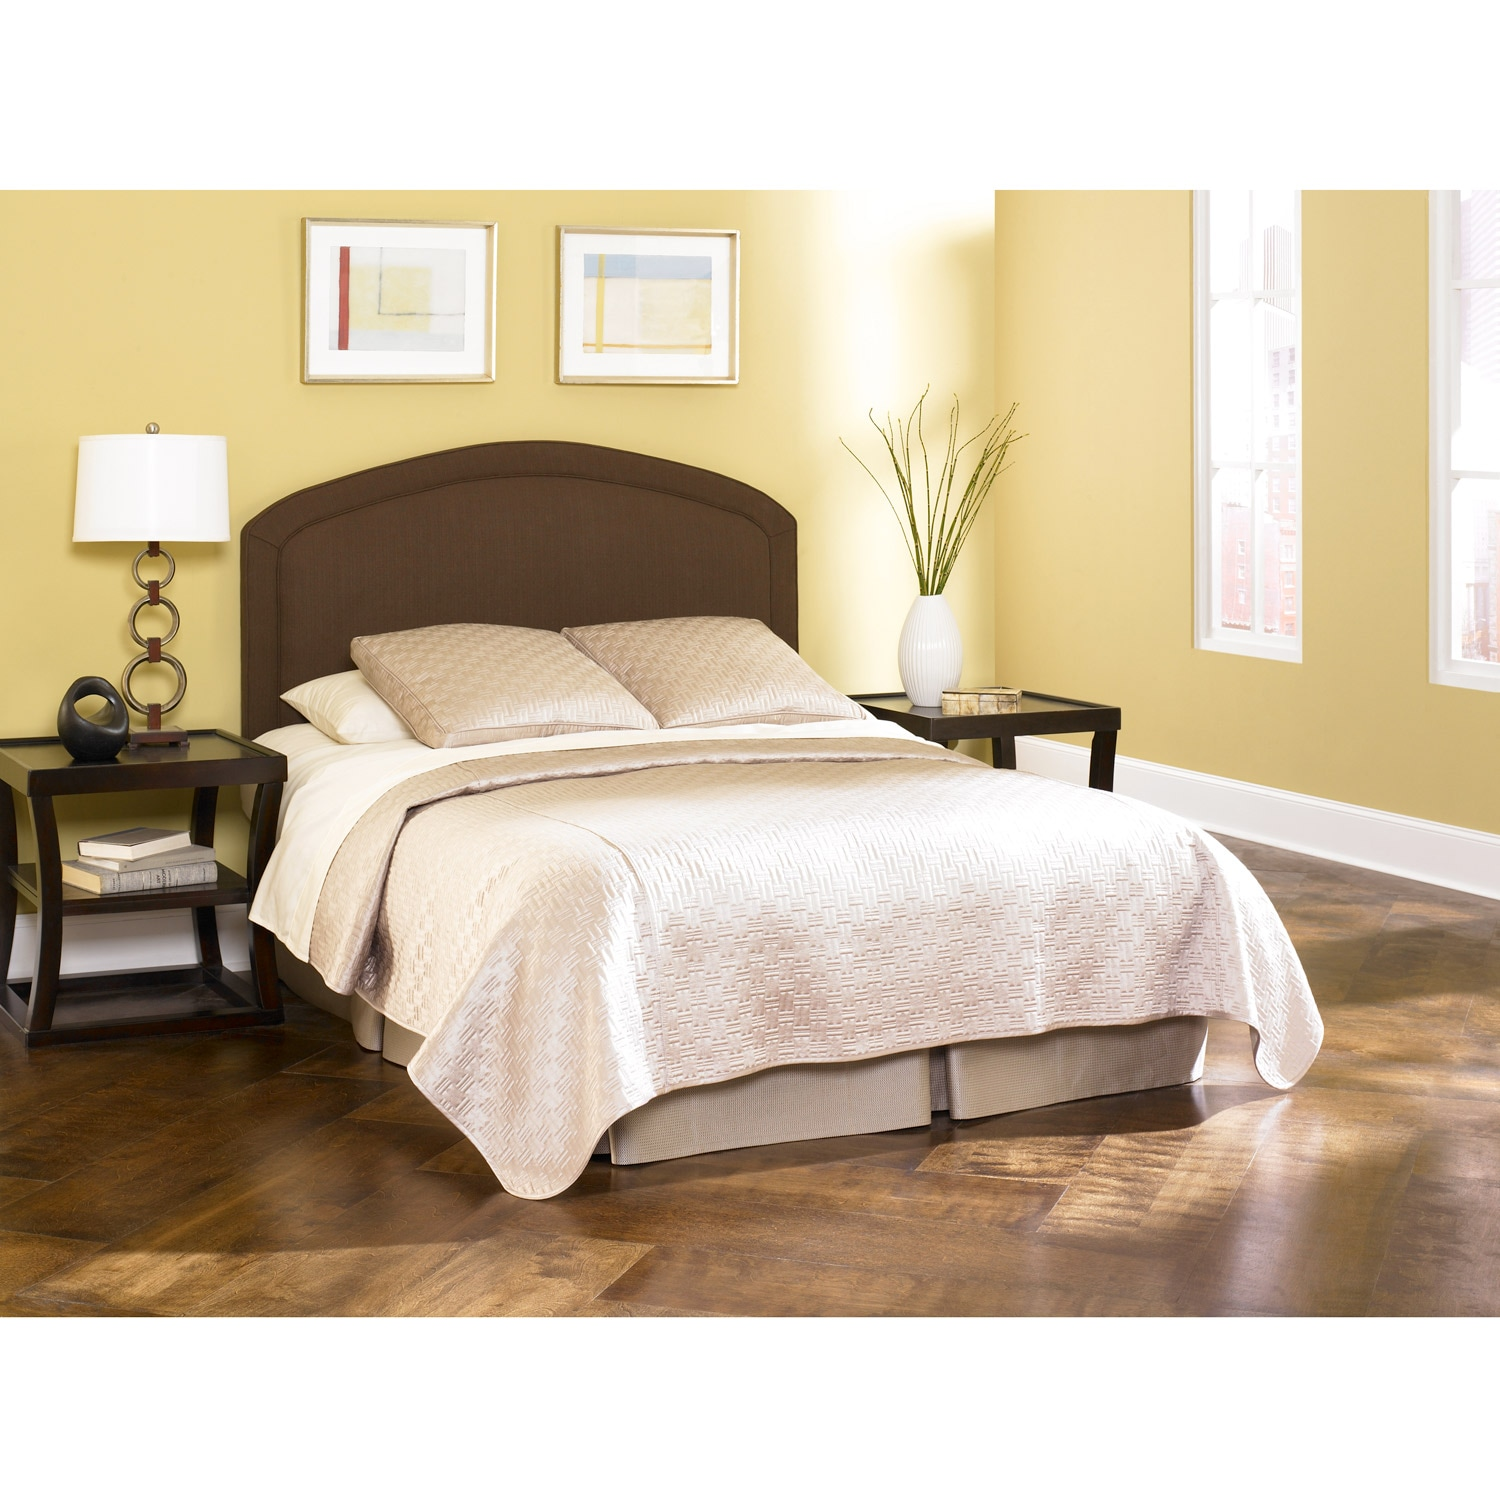 Cherbourg deep chocolate upholstered king cal king size for California king size headboard